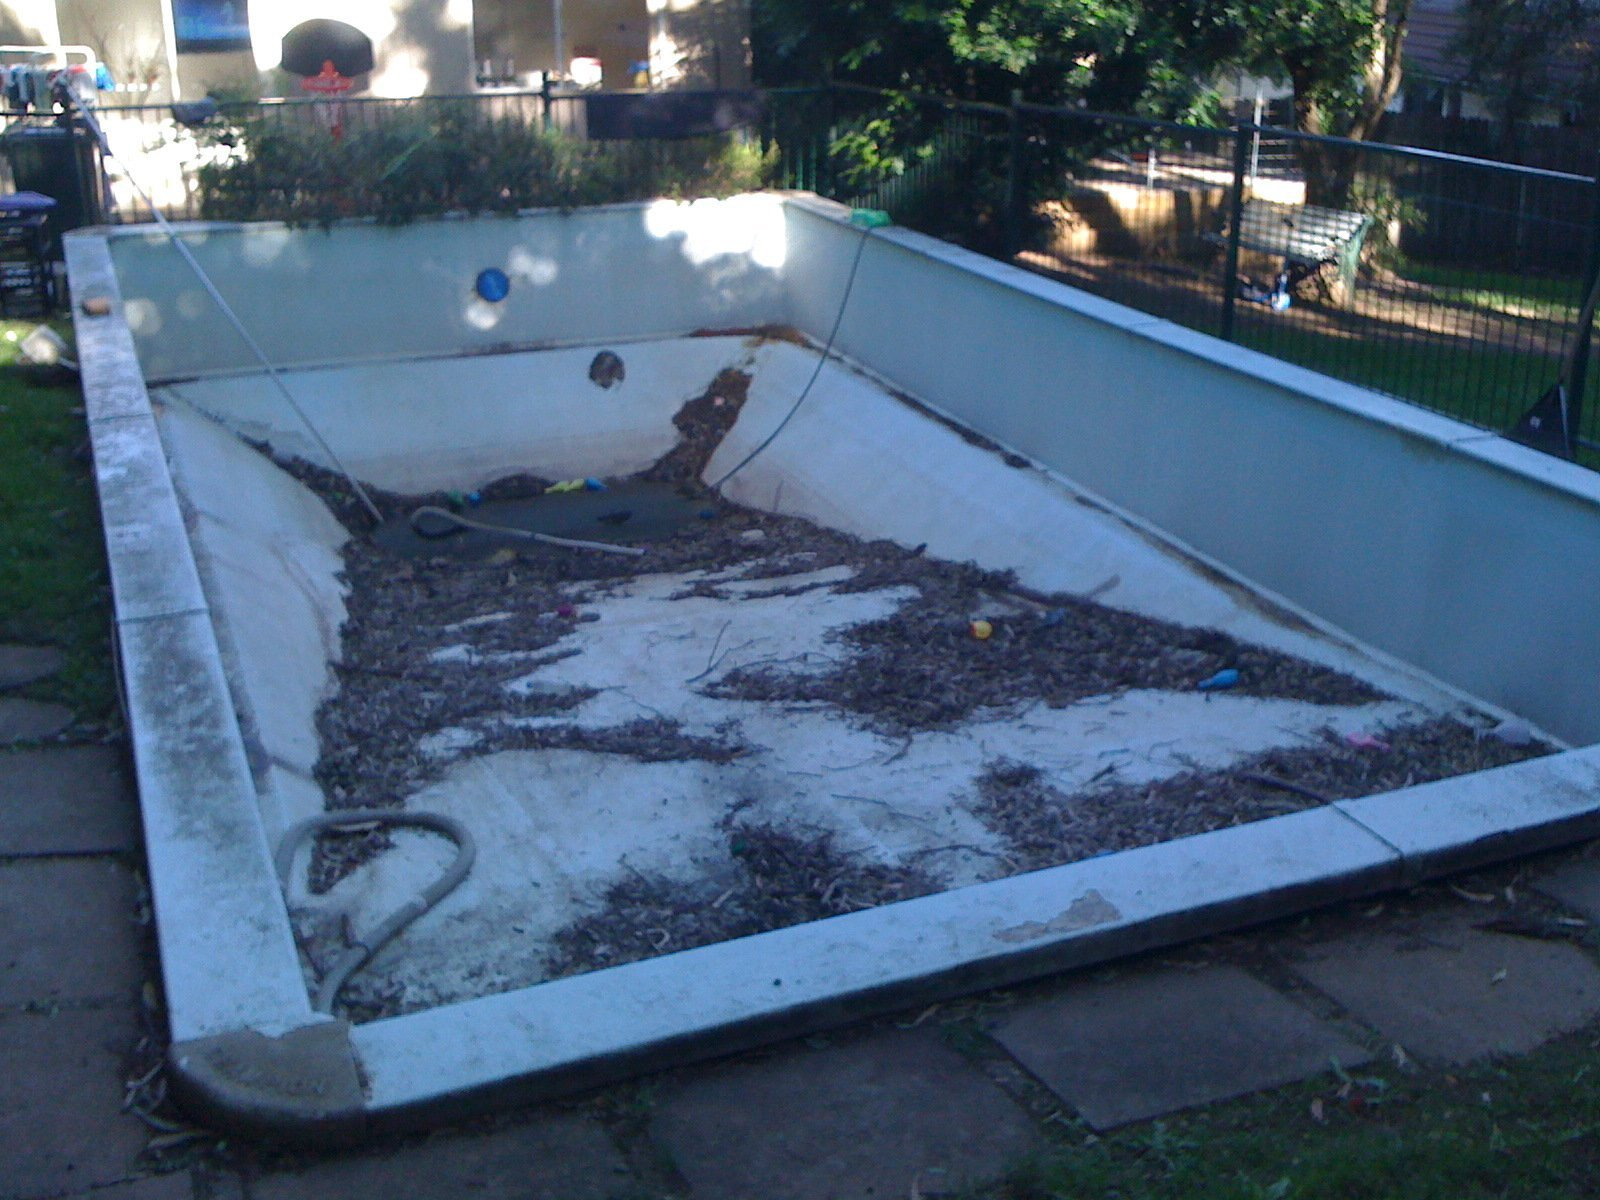 Old Vinyl Liner pool empty for pool resurfacing work